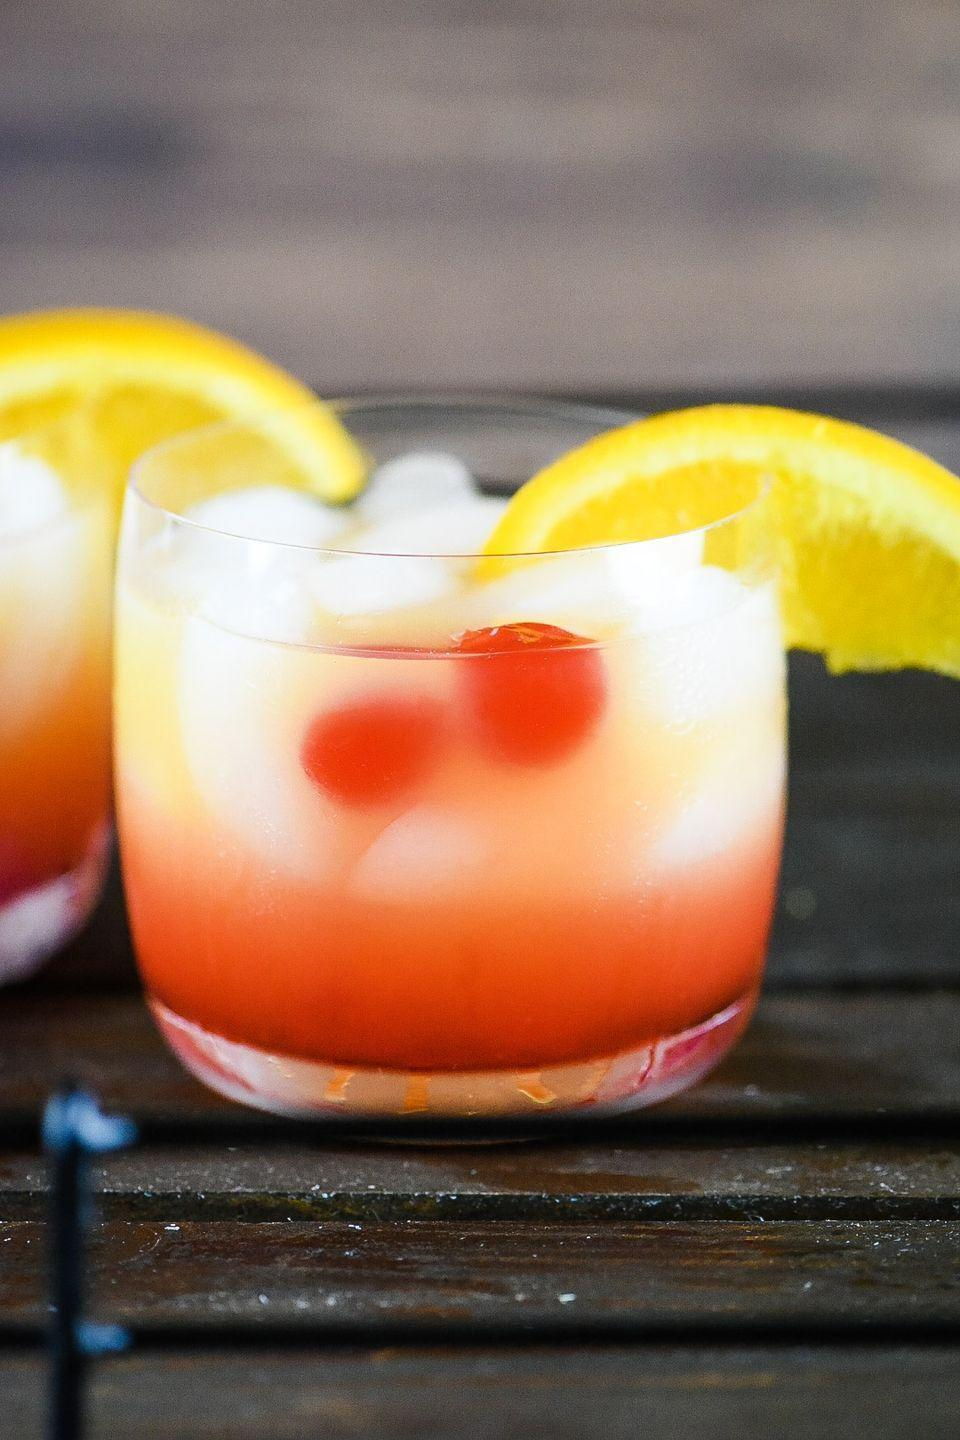 """<p>This two-toned drink will have you feeling like you're on a tropical island—even if you're just in the backyard. It's perfect for any summer party. </p><p><strong>Get the recipe at <a href=""""https://dudethatcookz.com/tequila-sunrise-cocktail/"""" rel=""""nofollow noopener"""" target=""""_blank"""" data-ylk=""""slk:Dude That Cookz"""" class=""""link rapid-noclick-resp"""">Dude That Cookz</a>.</strong></p><p><a class=""""link rapid-noclick-resp"""" href=""""https://go.redirectingat.com?id=74968X1596630&url=https%3A%2F%2Fwww.walmart.com%2Fsearch%2F%3Fquery%3Dutensils&sref=https%3A%2F%2Fwww.thepioneerwoman.com%2Ffood-cooking%2Fmeals-menus%2Fg36432840%2Ffourth-of-july-drinks%2F"""" rel=""""nofollow noopener"""" target=""""_blank"""" data-ylk=""""slk:SHOP UTENSILS"""">SHOP UTENSILS</a></p>"""